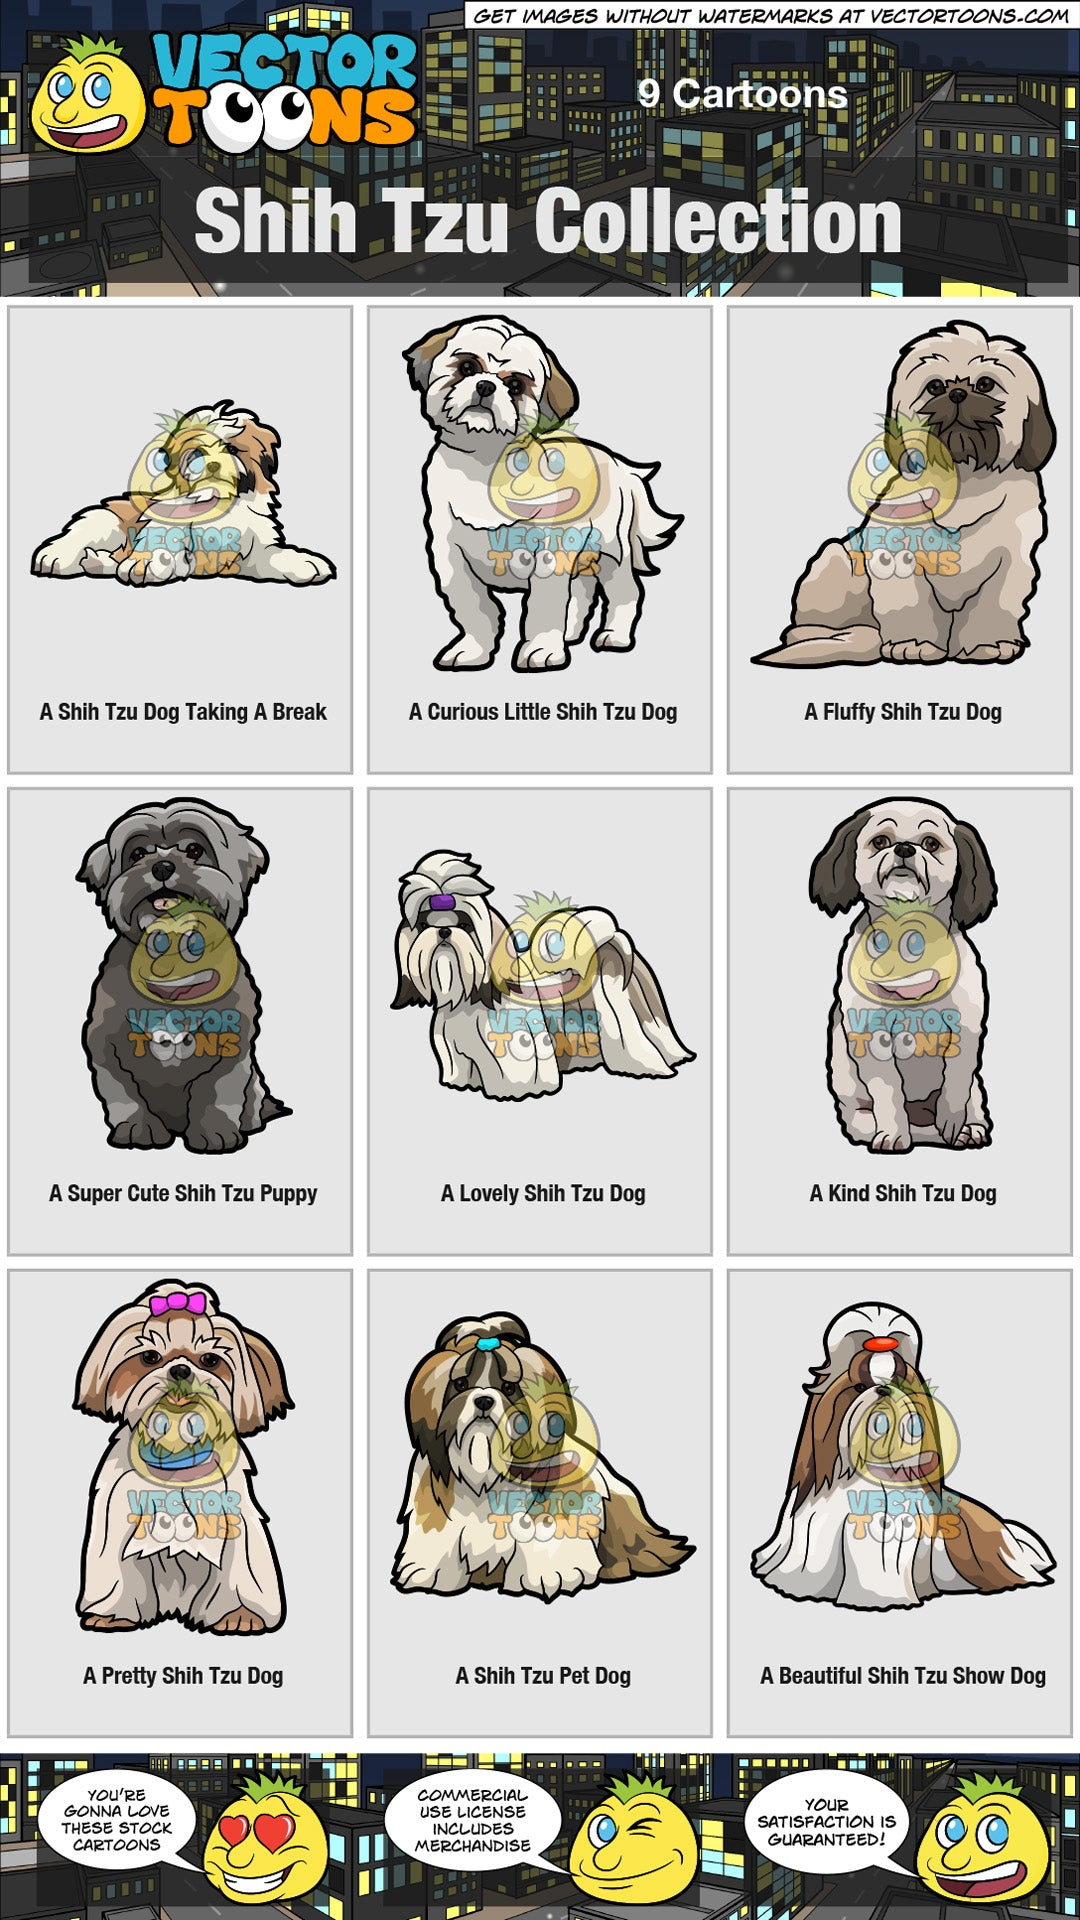 Shih Tzu Collection